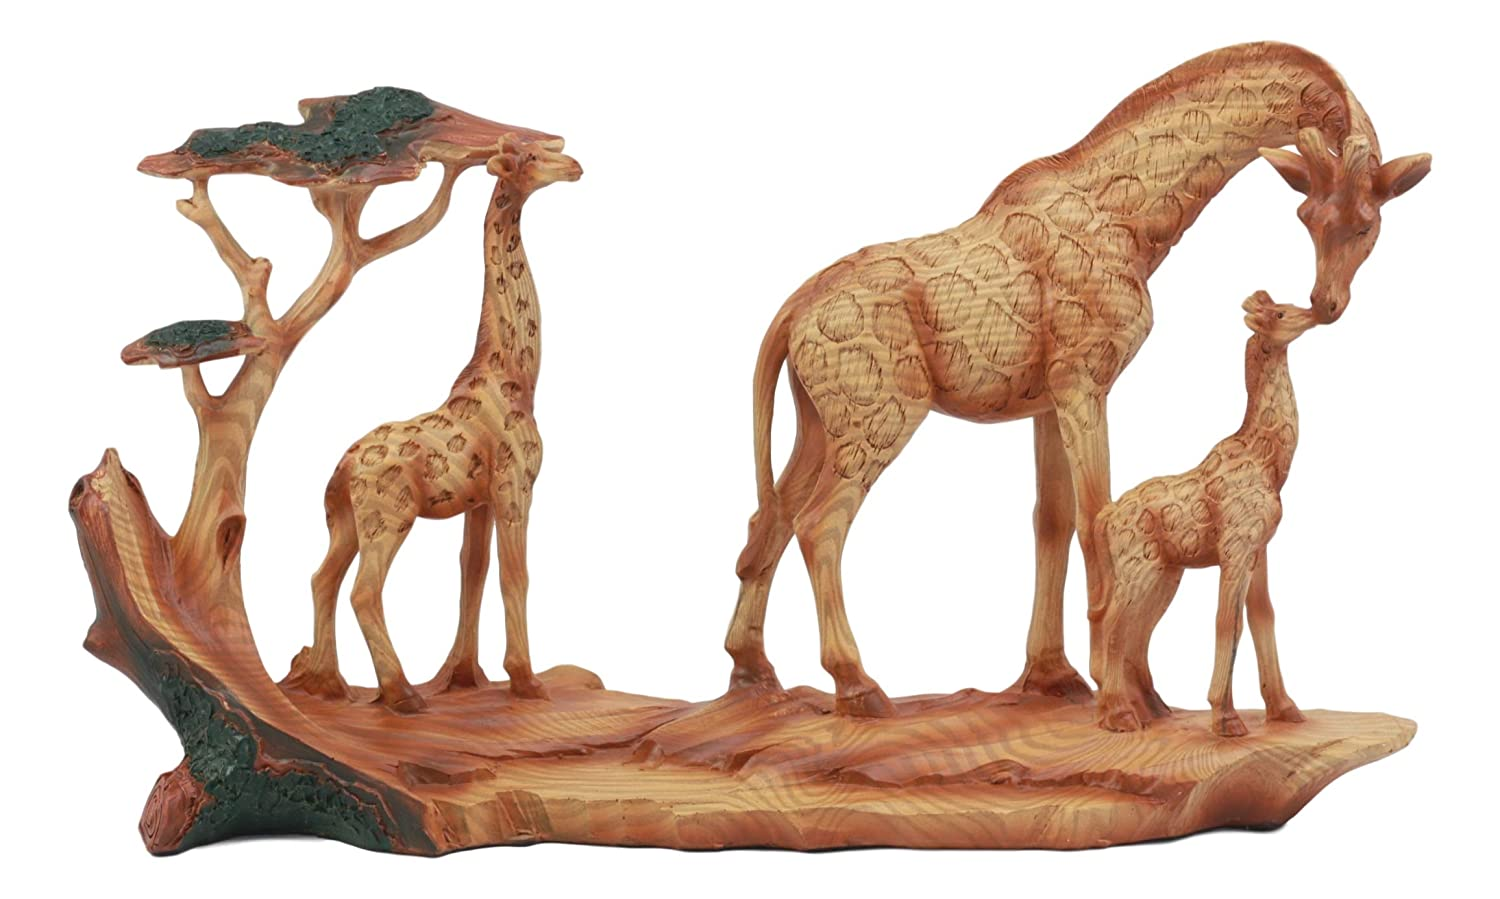 "Ebros Safari Giraffe Family Statue 12""Long Faux Wood Resin Three Giraffes in Wilfdlife Savanna Scene Figurine"